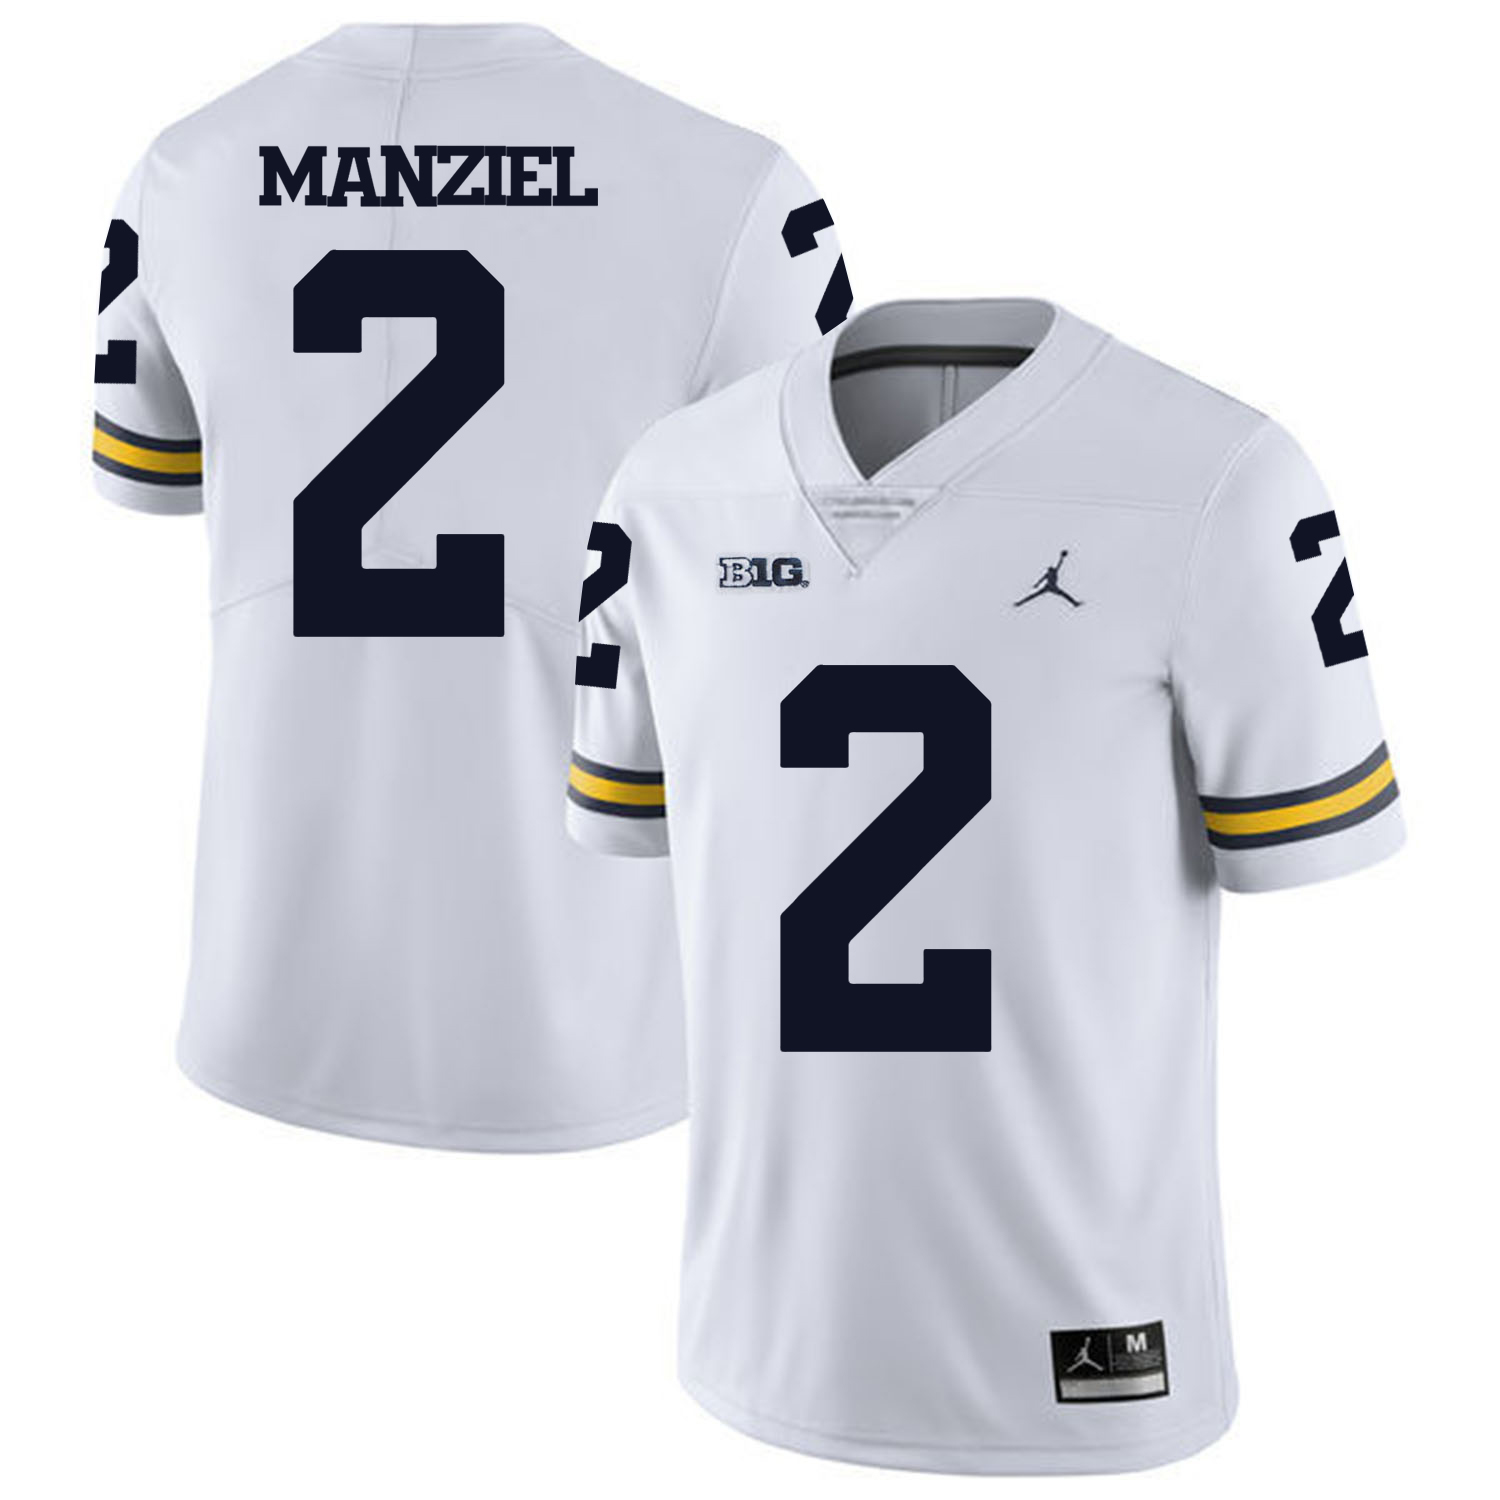 Michigan Wolverines 2 Johnny Manziel White College Football Jersey